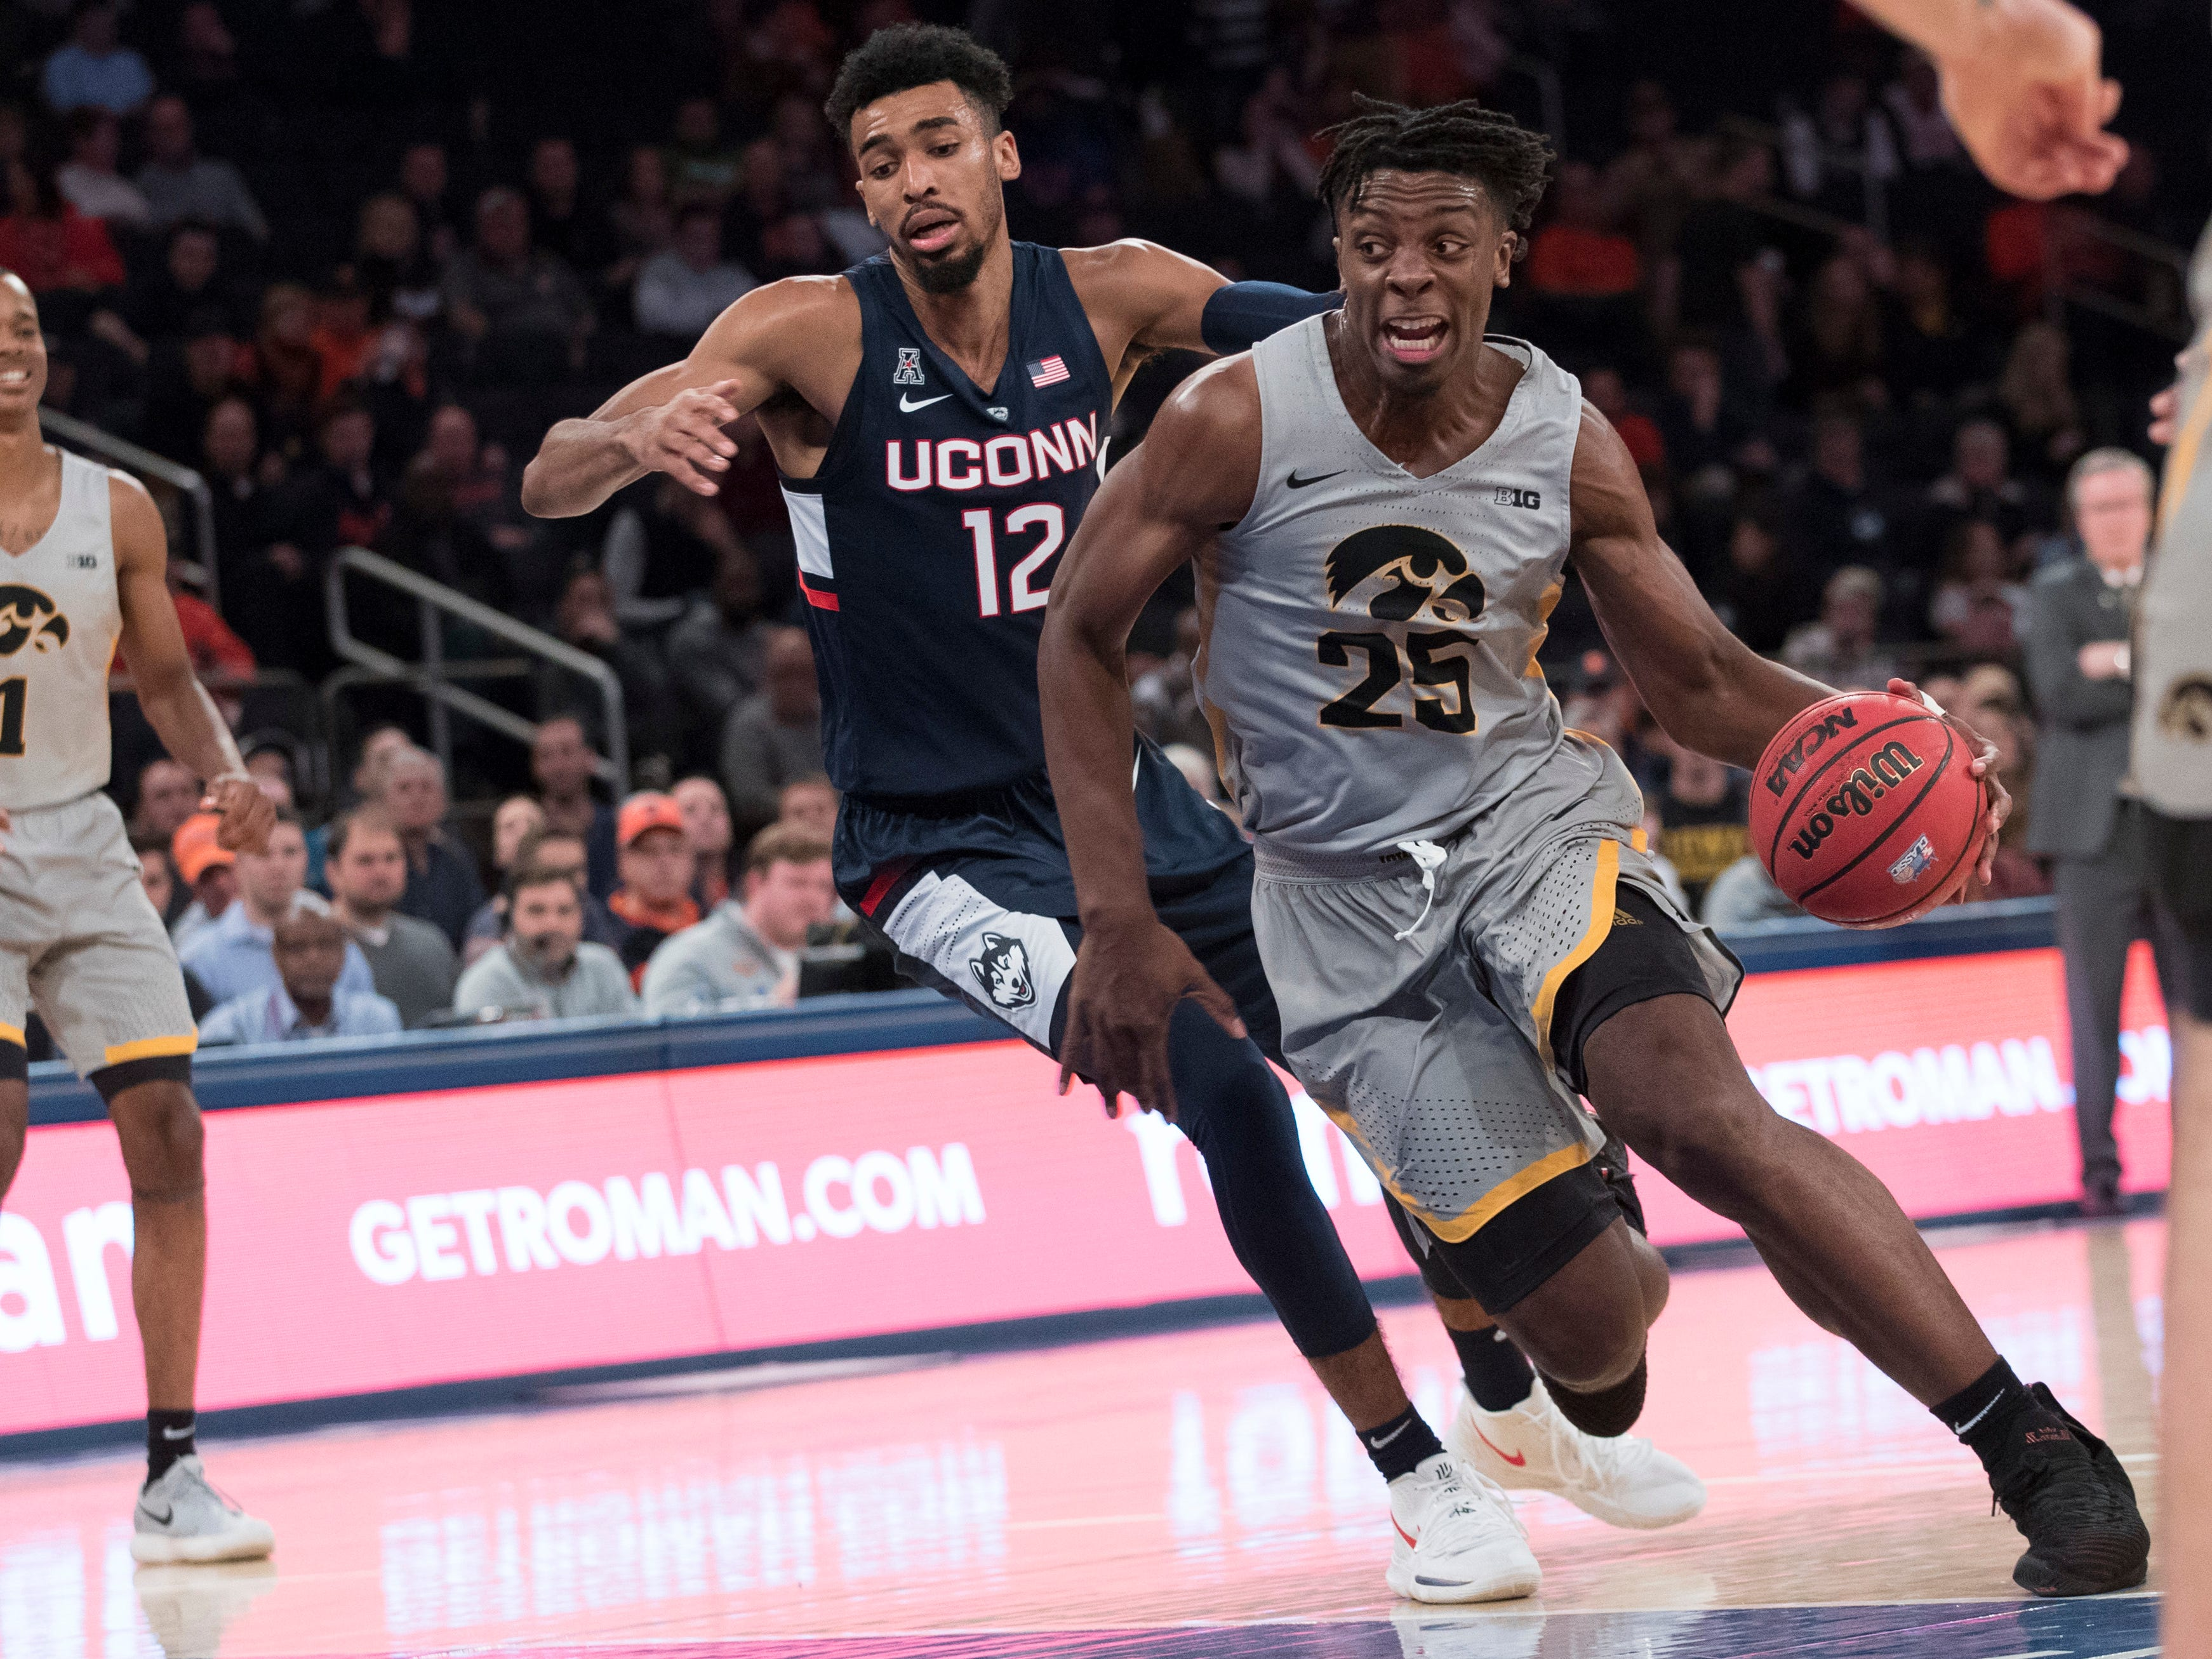 Iowa basketball blows past Connecticut to win 2K Classic Tournament